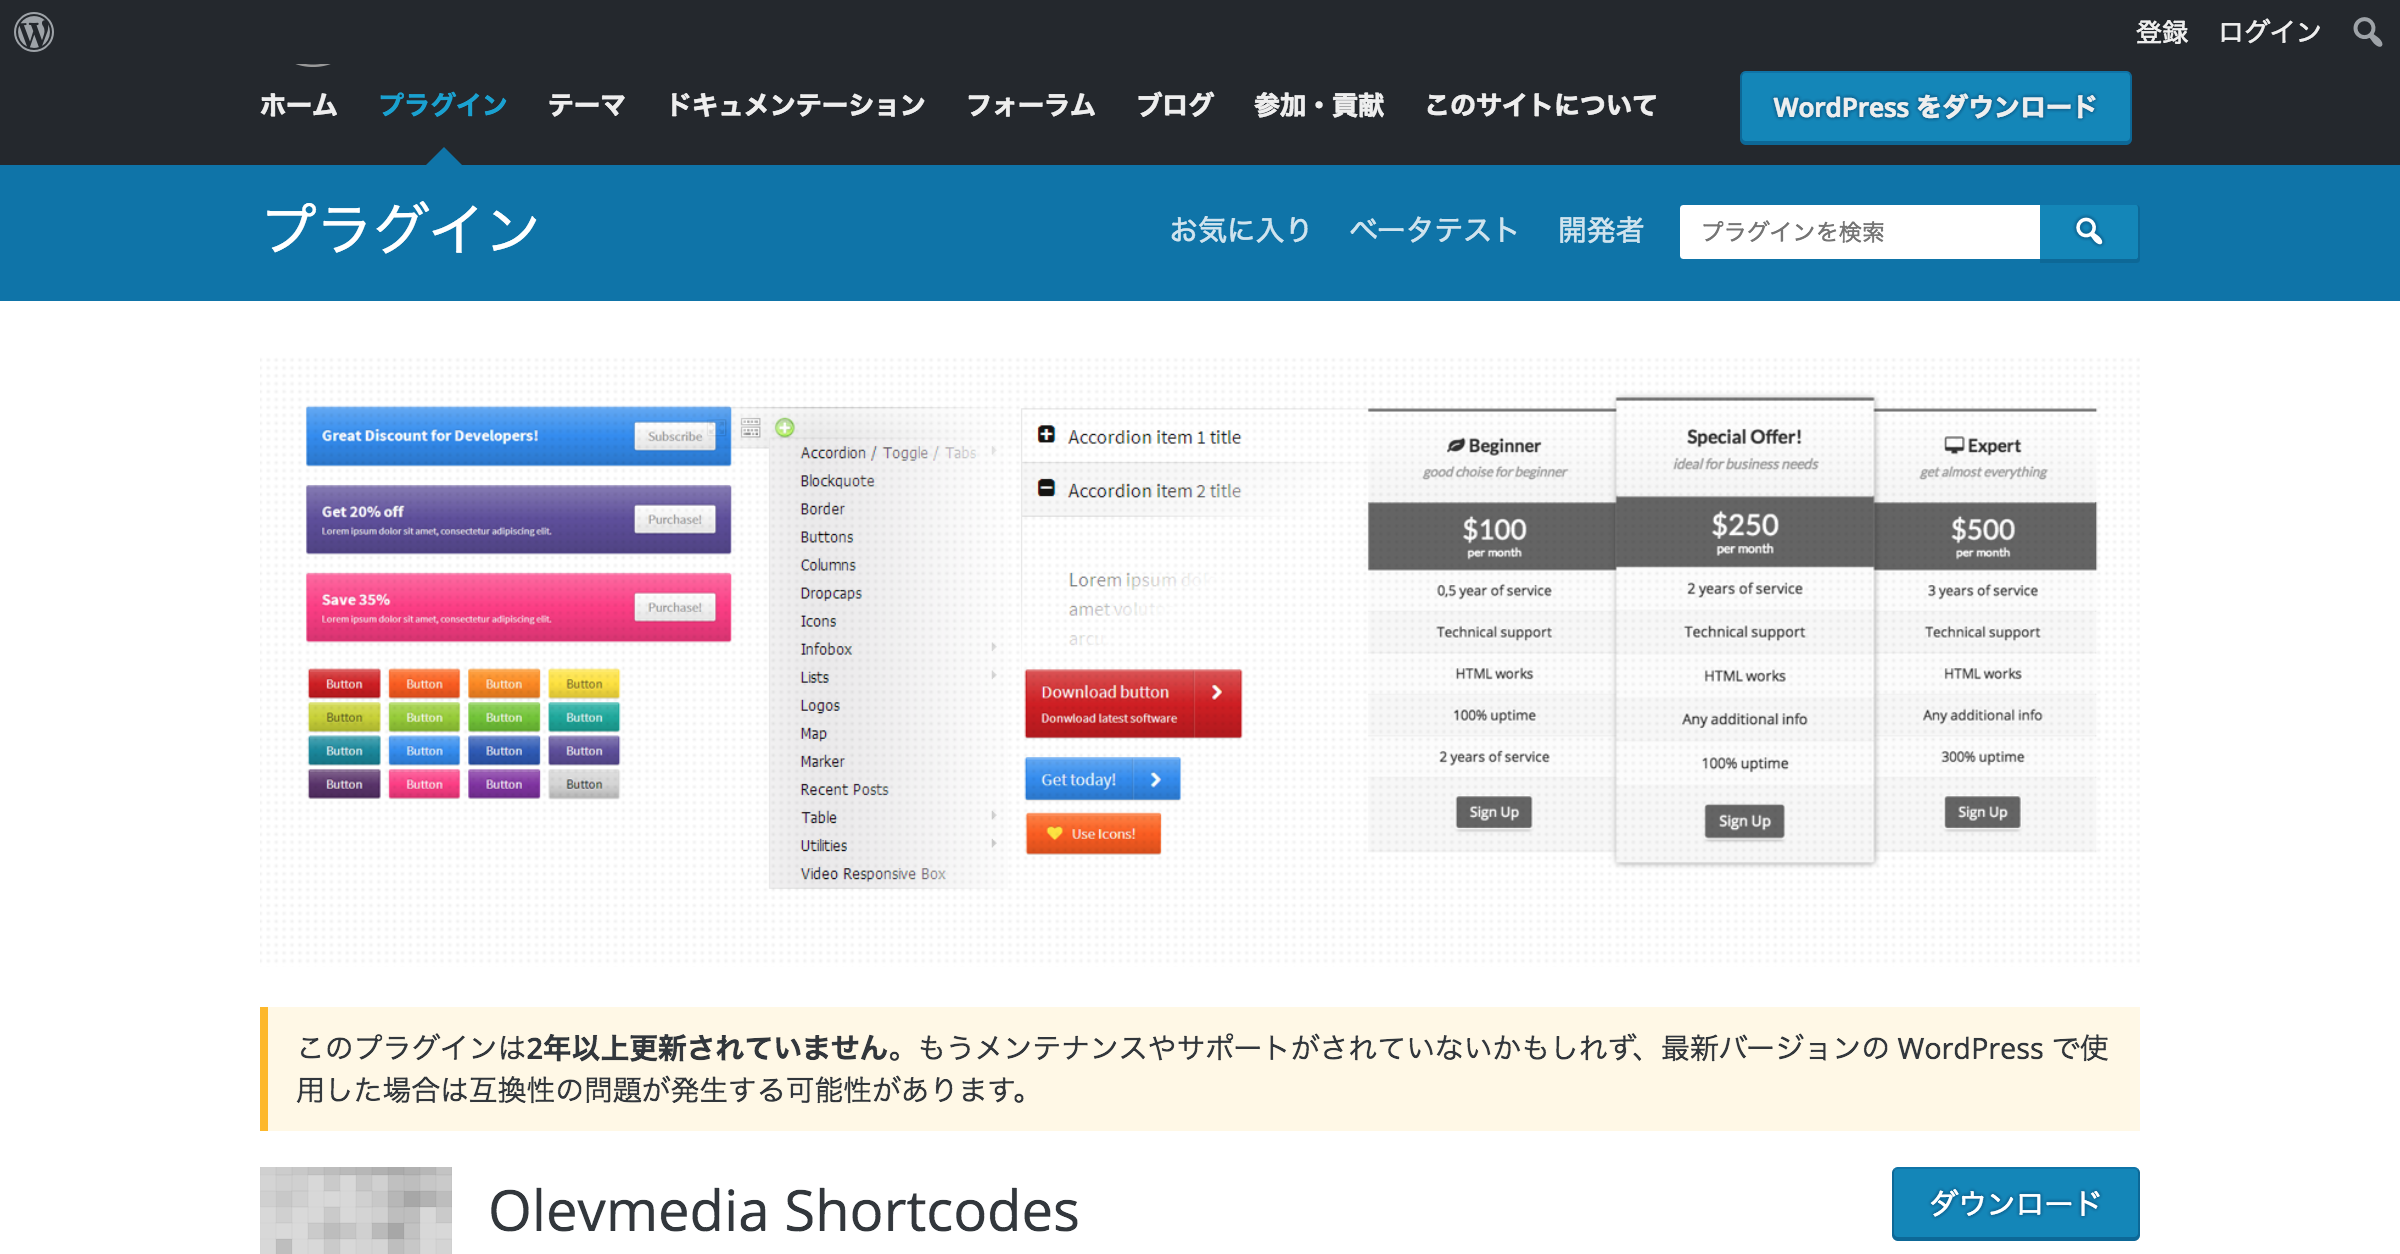 levmedia Shortcodes _ - https___ja.wordpress.org_plugins_olevmedia-shortcodes_